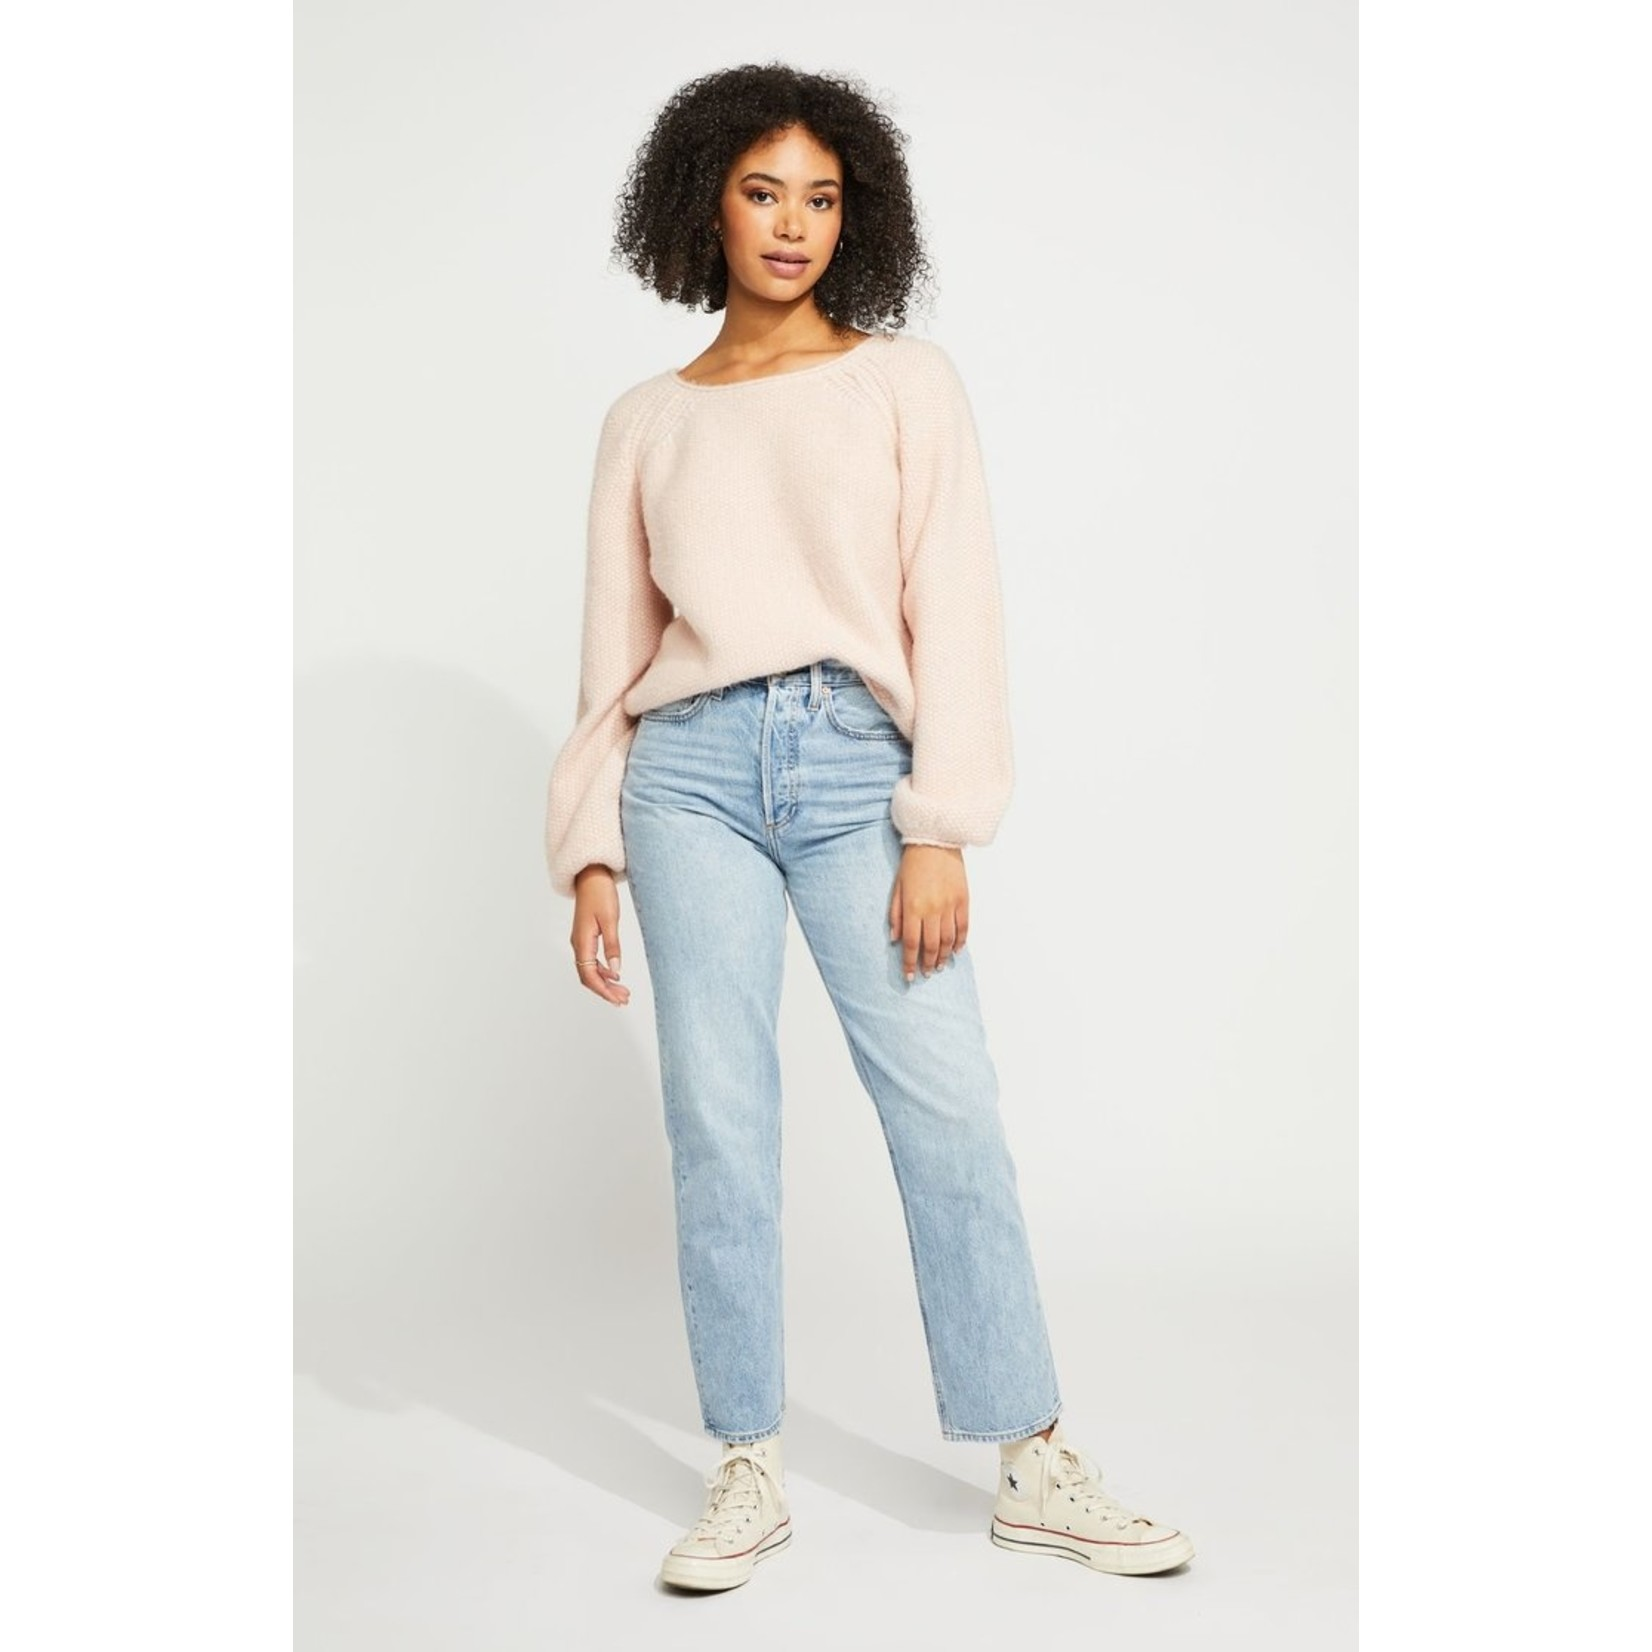 GENTLE FAWN ADRIANA PULLOVER